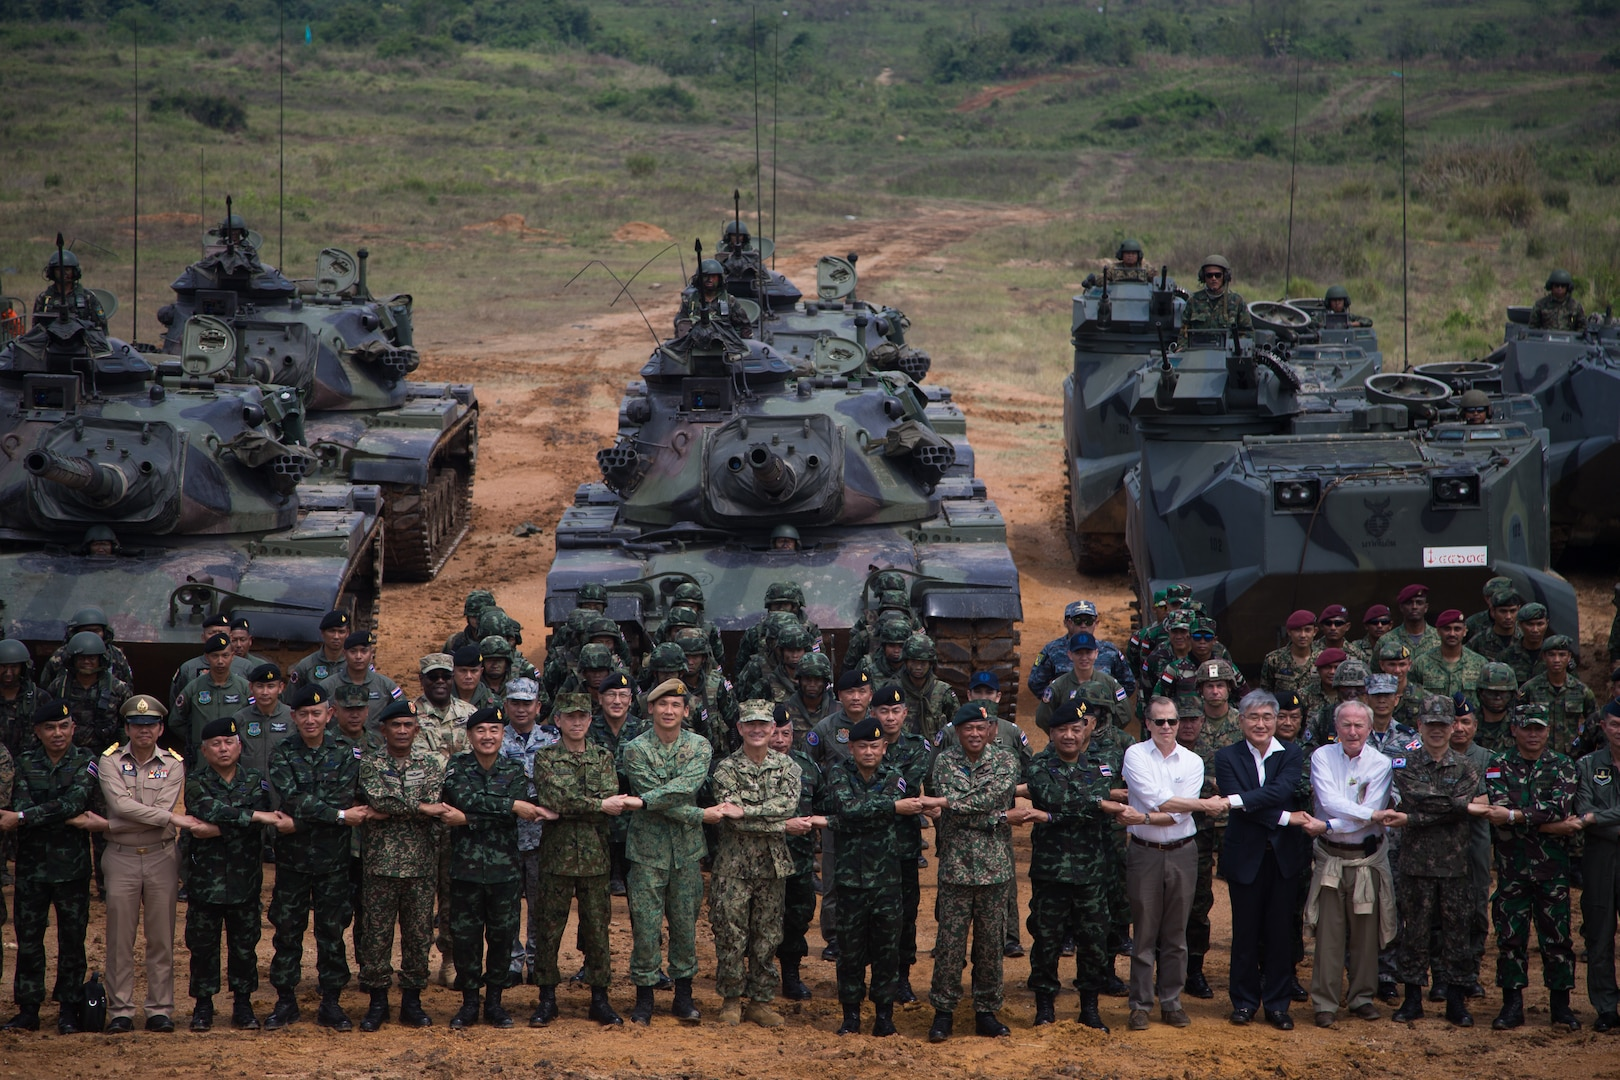 U.S. Navy Adm. Harry Harris, commander, U.S. Pacific Command, Gen. Thanchaiyan Srisuwan, Chief of Defense Forces in Thailand, and U.S. Ambassador to Thailand Glyn Davies, along with other officials, pose for a group photo after a combined arms live fire exercise during Exercise Cobra Gold 18